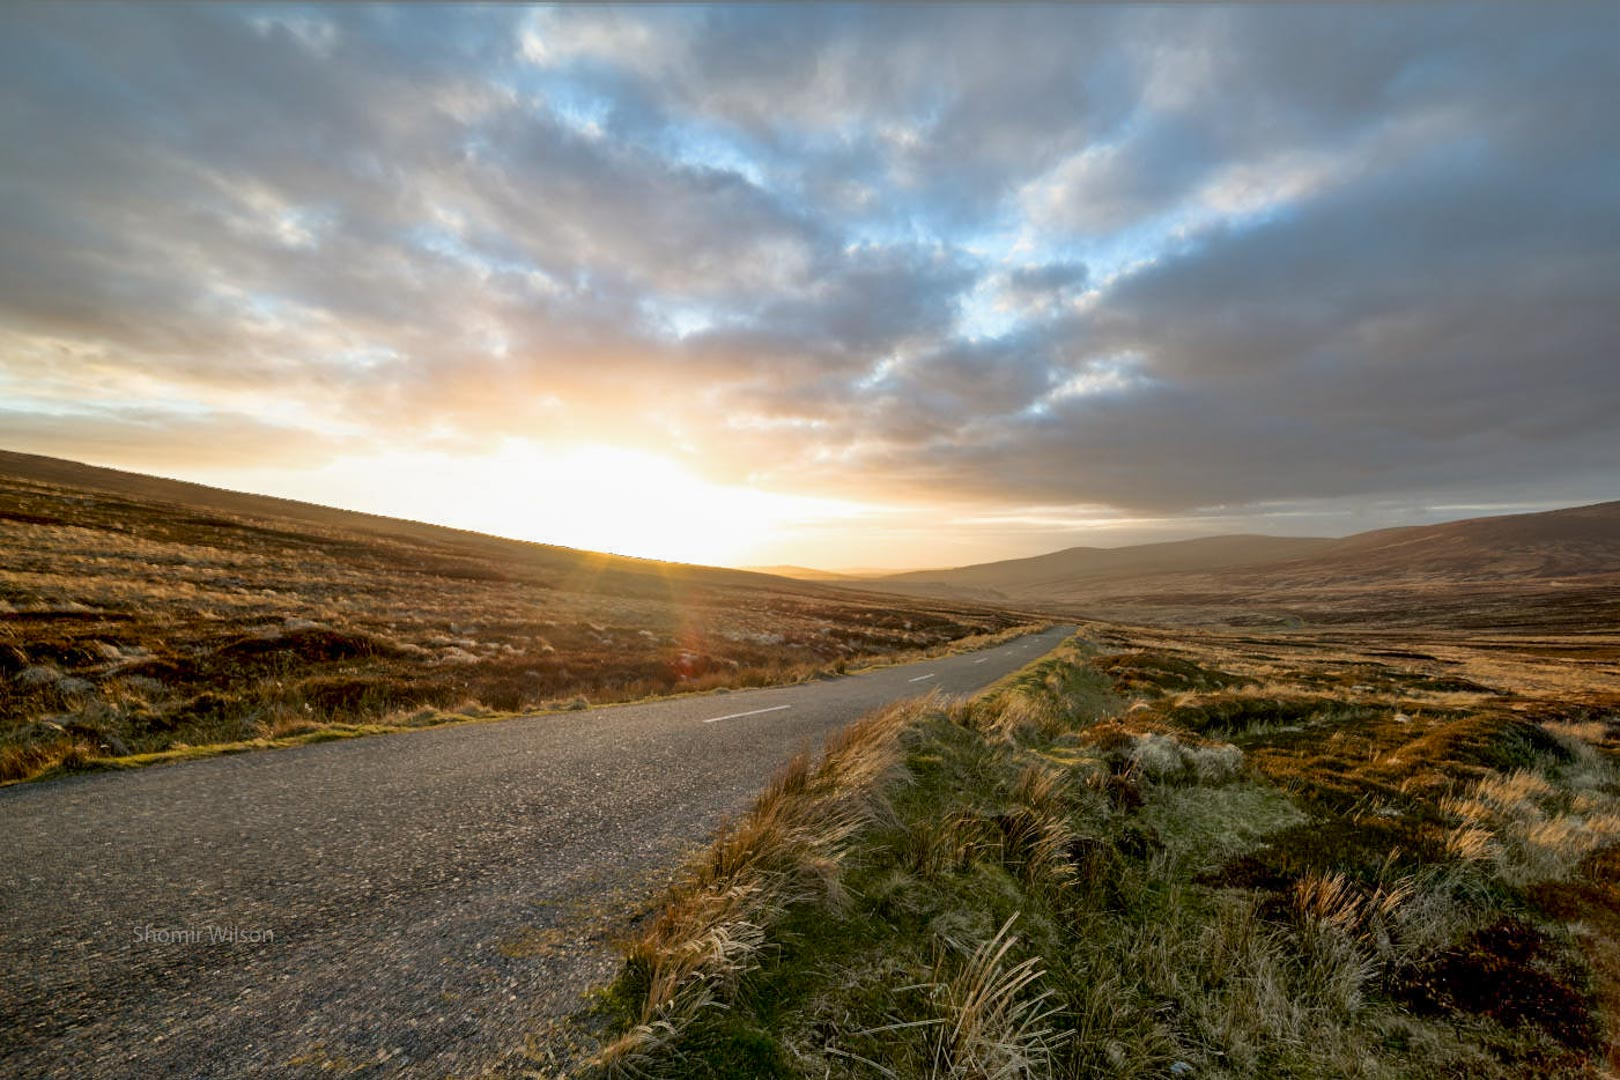 road across a boggy plain with with mountains in the distance and a sunset in the sky